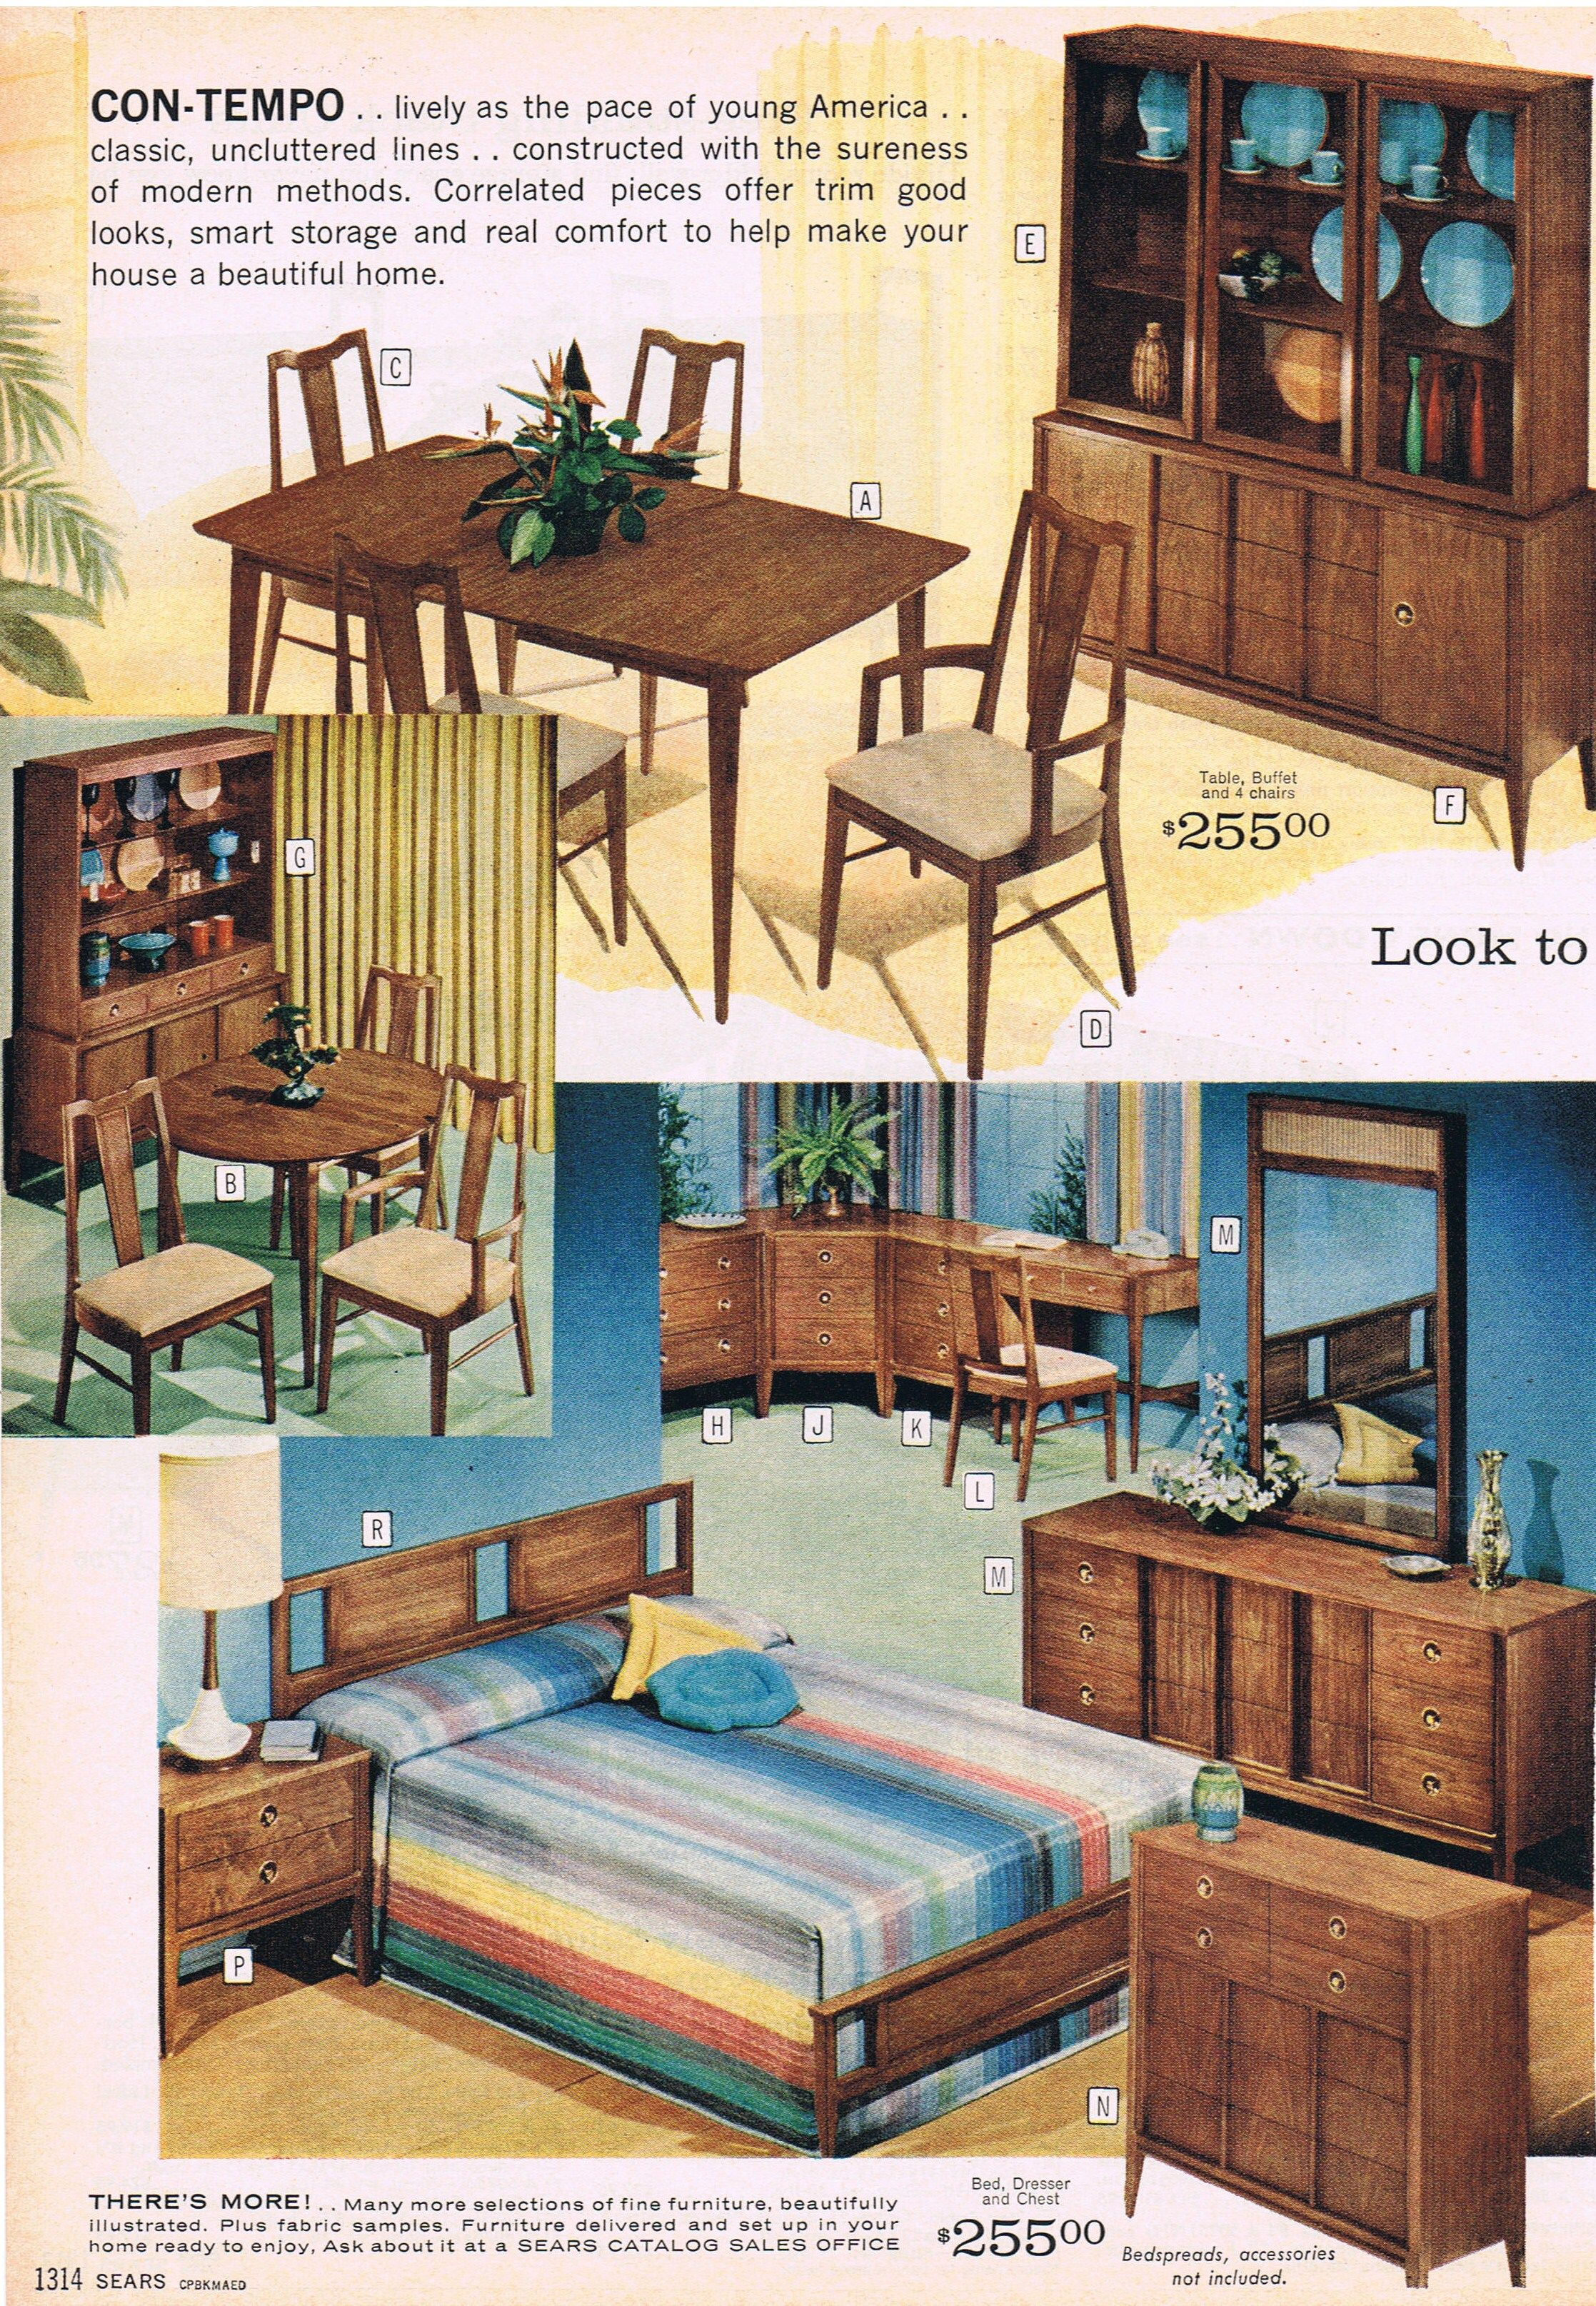 Con Tempo mid century modern furniture from Sears 1963   Guest house     Con Tempo mid century modern furniture from Sears 1963